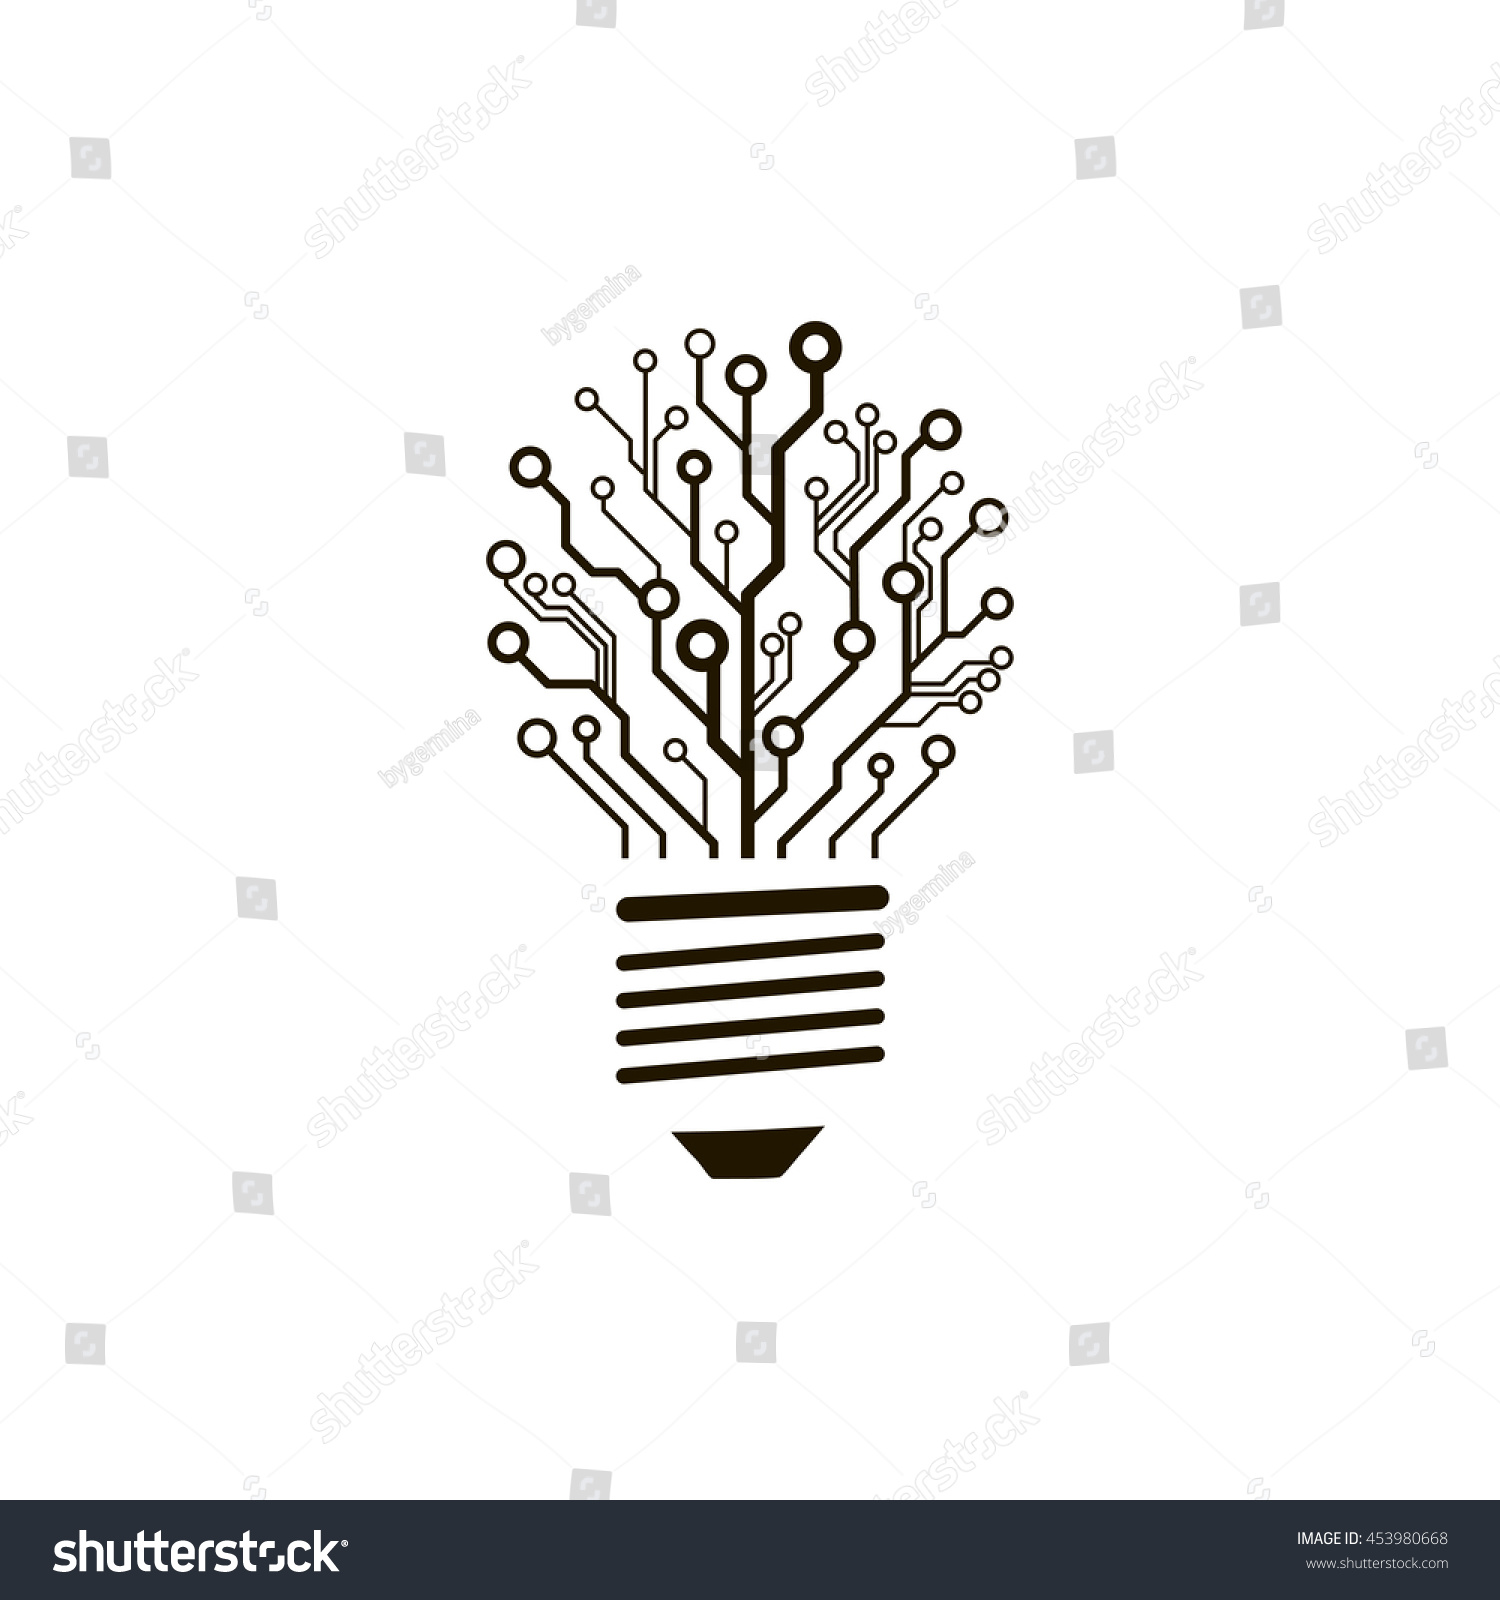 Royalty Free A Concept Of Information Technology 453980668 Stock Circuit Board Photo Hd Public Domain Pictures Logo Vector Bulb Creative Engineering Thinking Sign